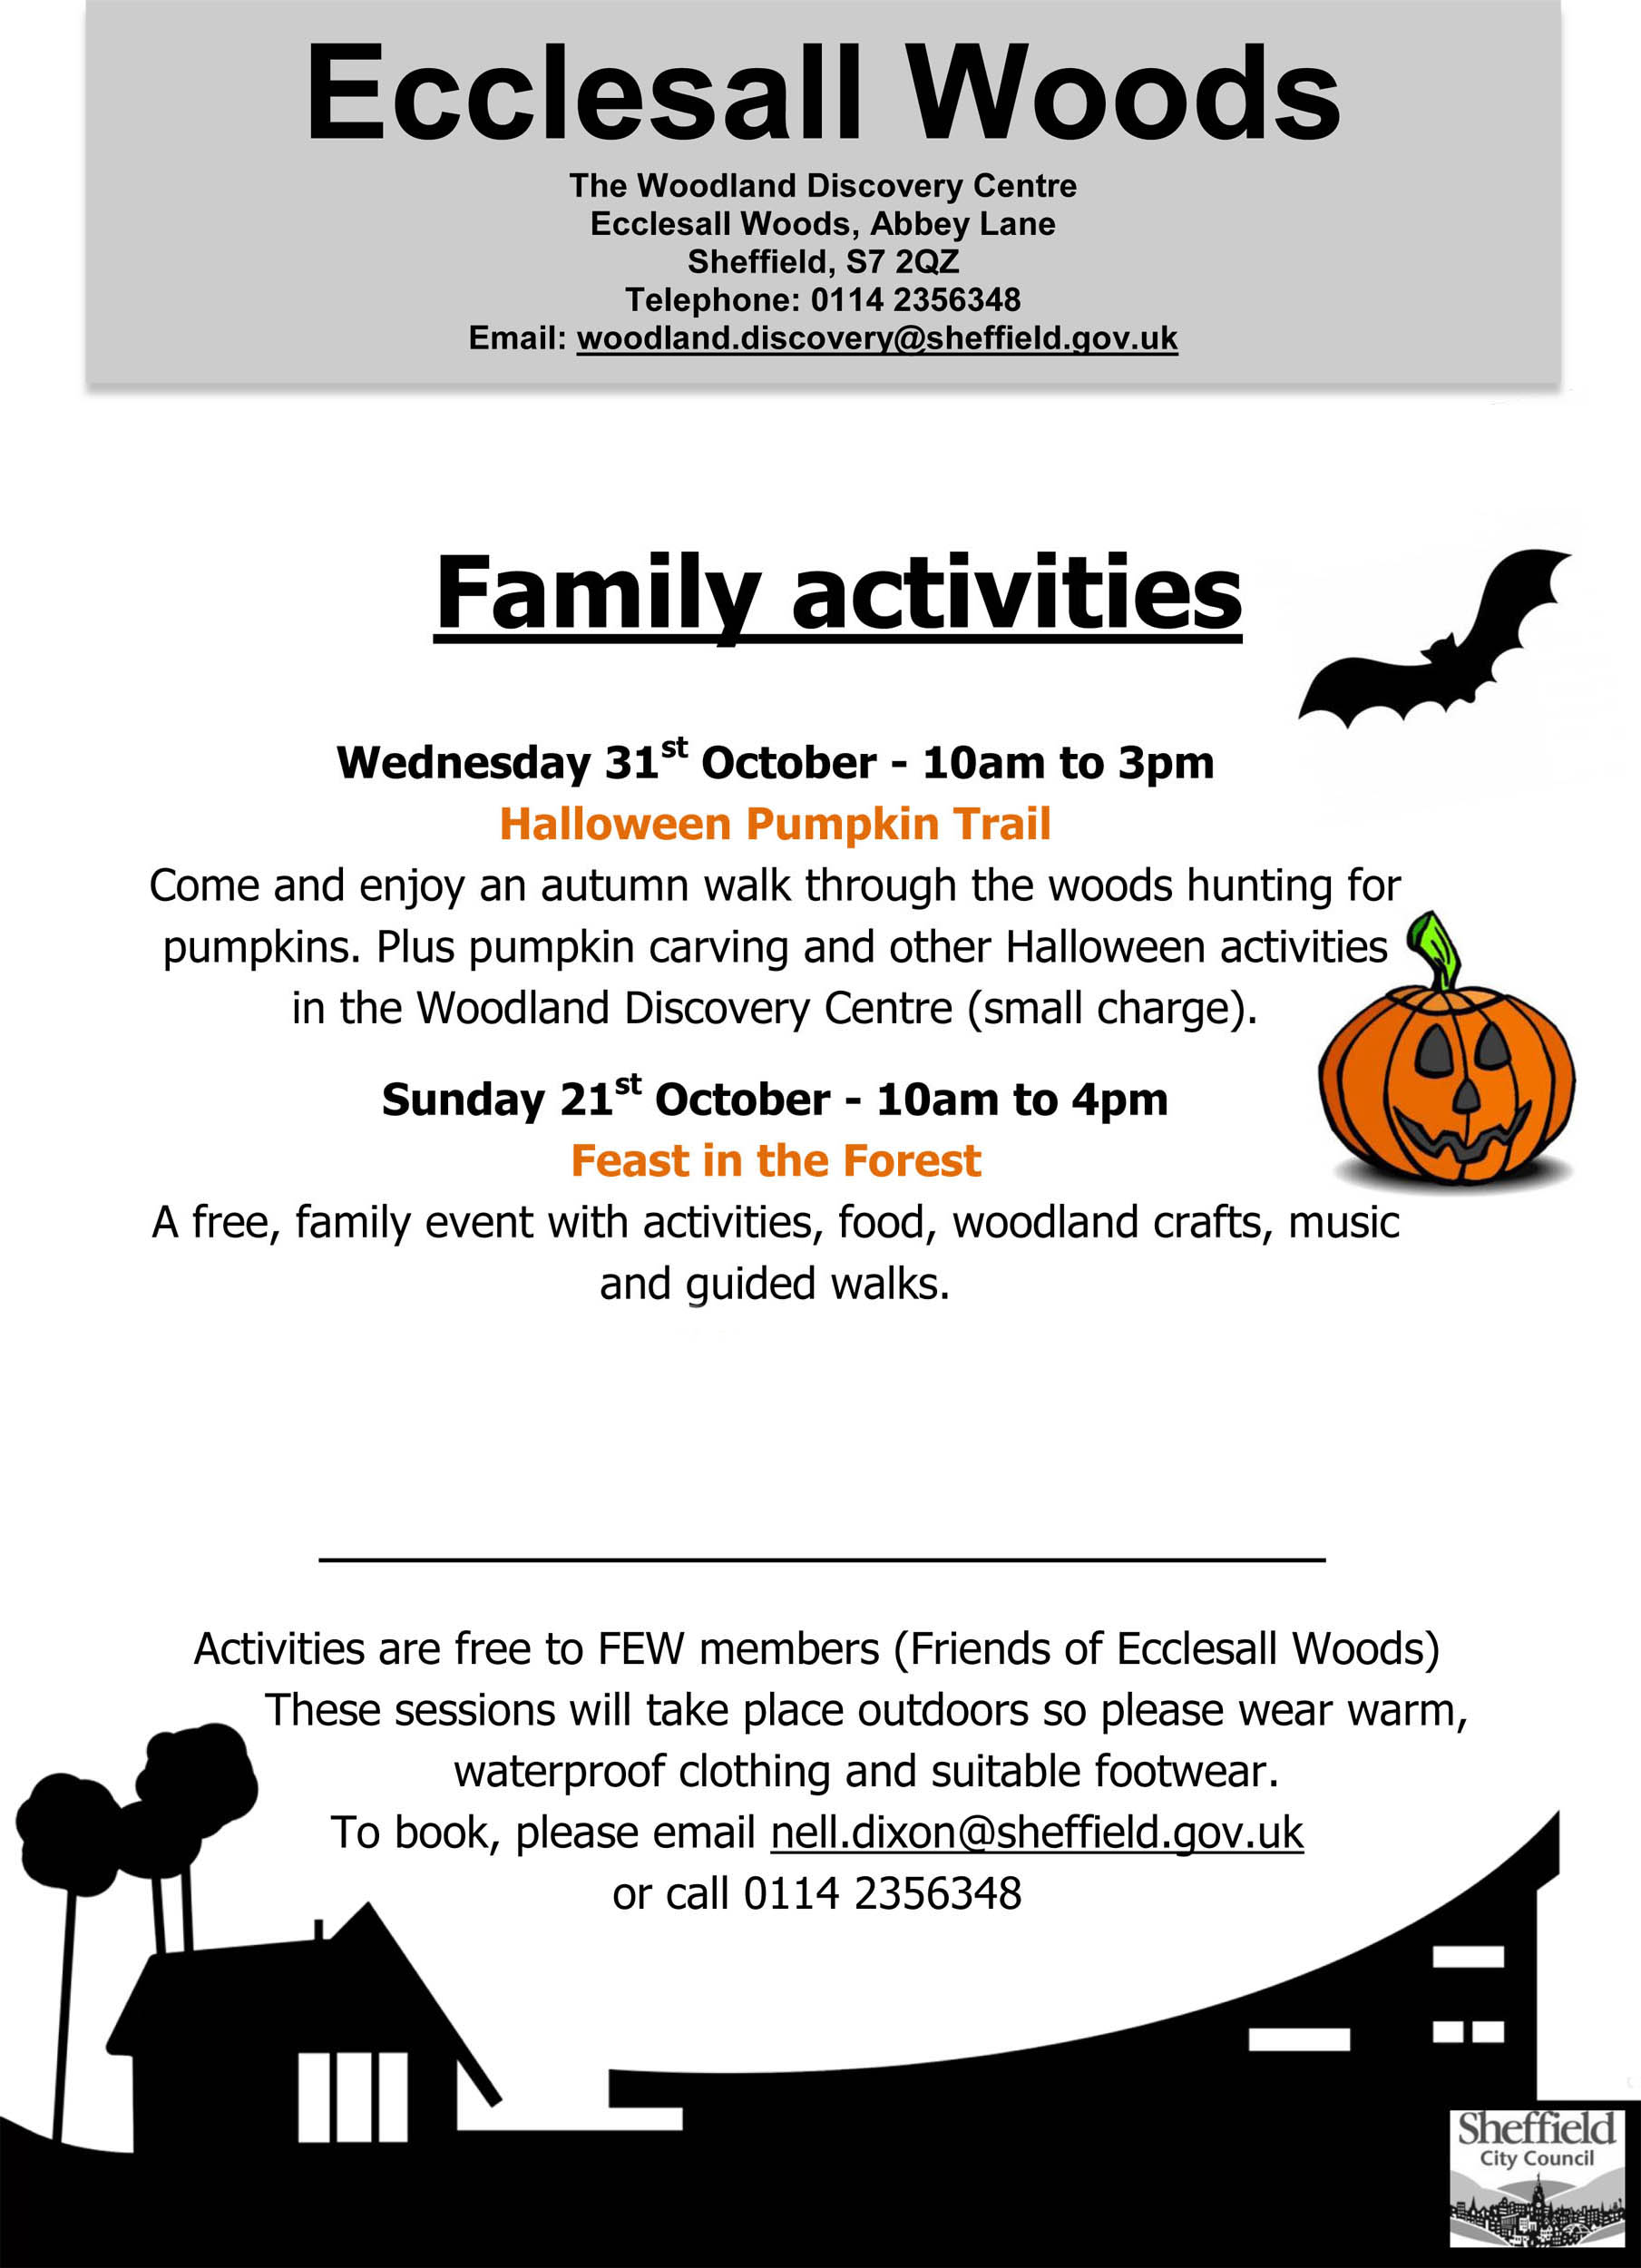 Family Events in Ecclesall Woods this Autumn